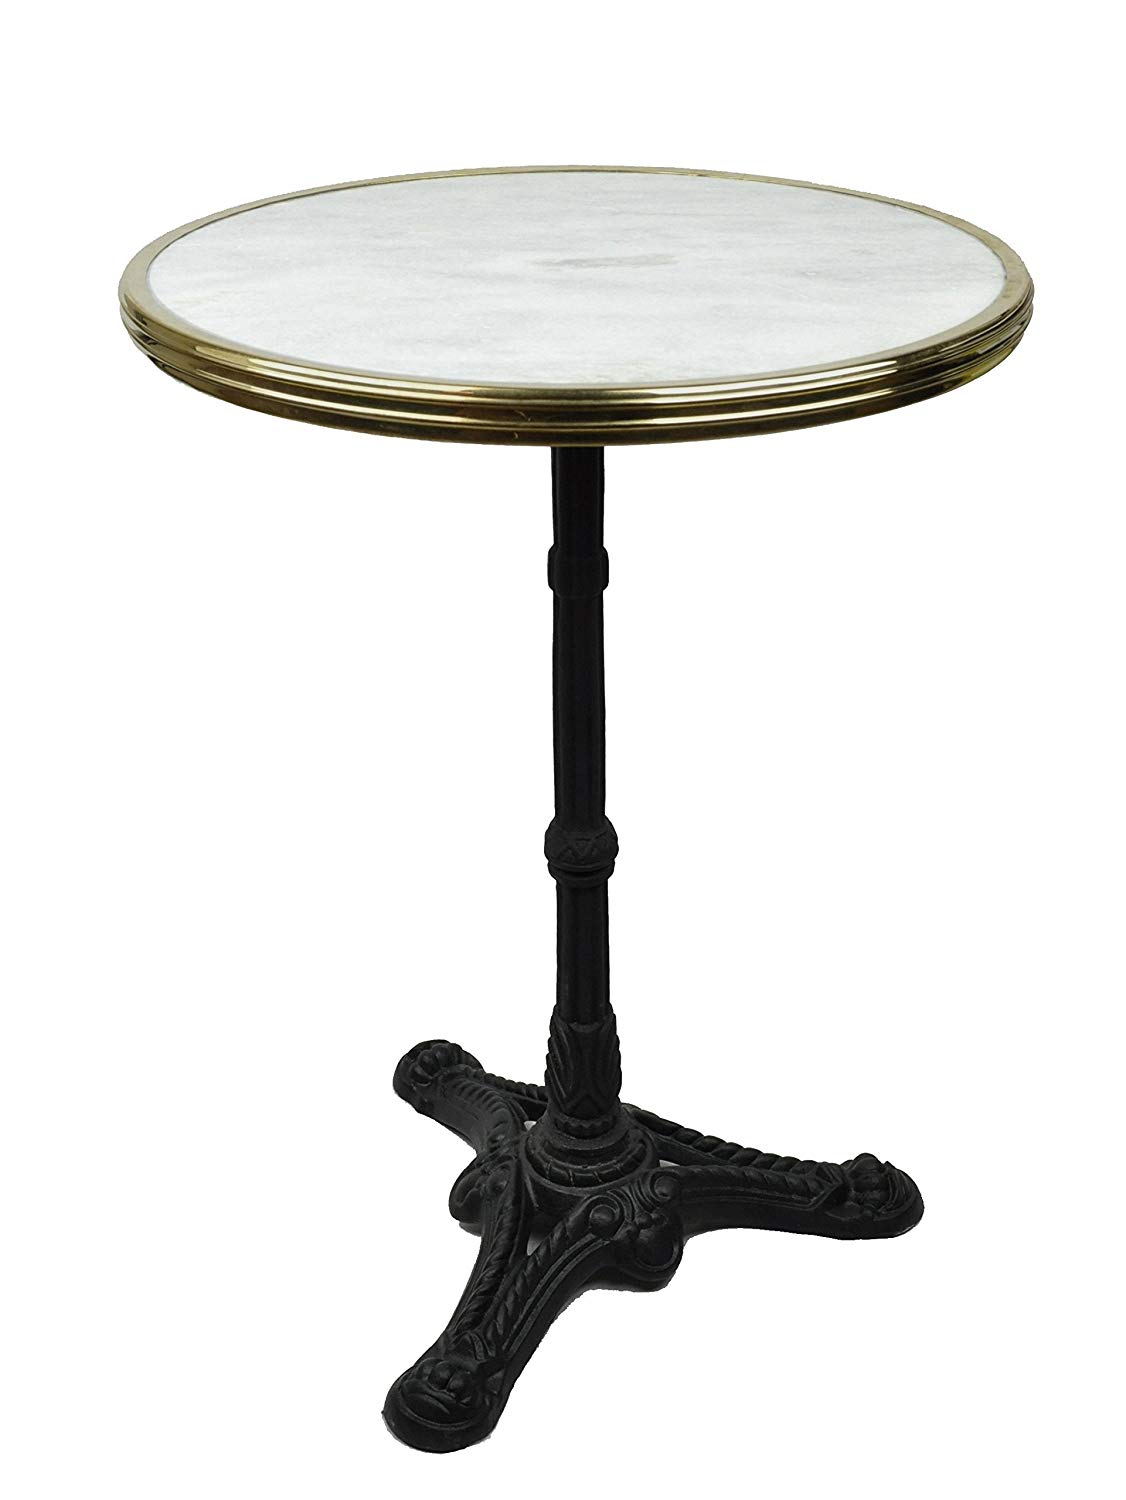 bonnecaze absinthe home french bistro table white marble accent iron base kitchen cast aluminium garden furniture accents dishes round bedside covers rod frame yellow small